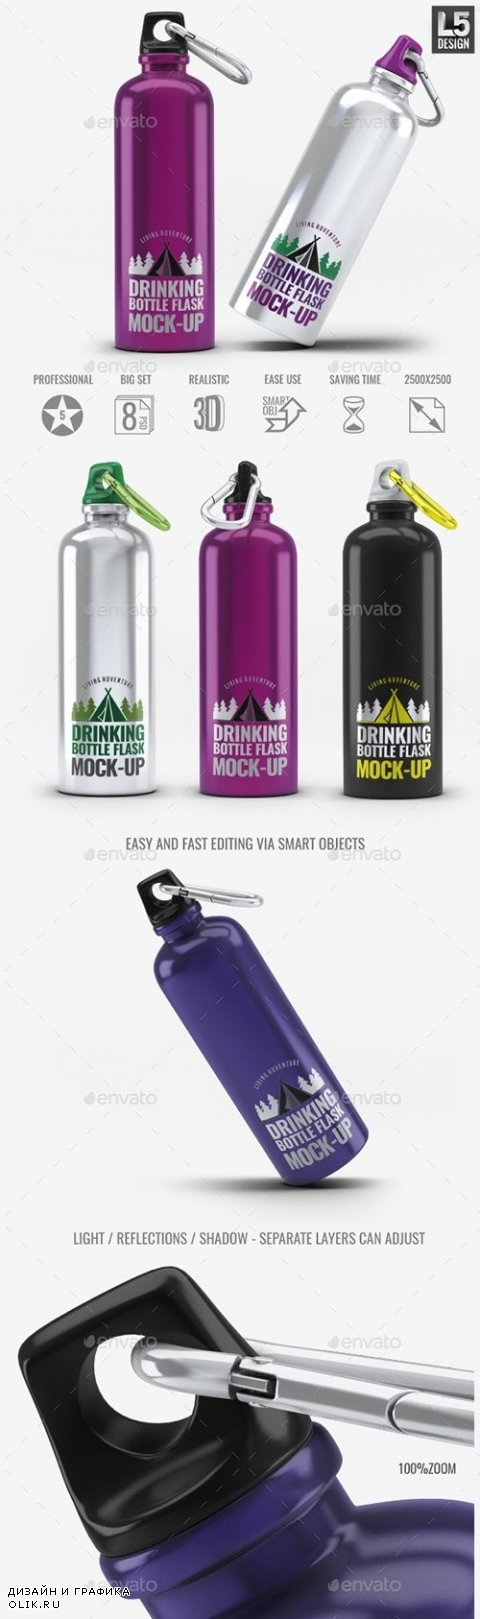 Drinking Bottle Flask Mock-Up - 17090033